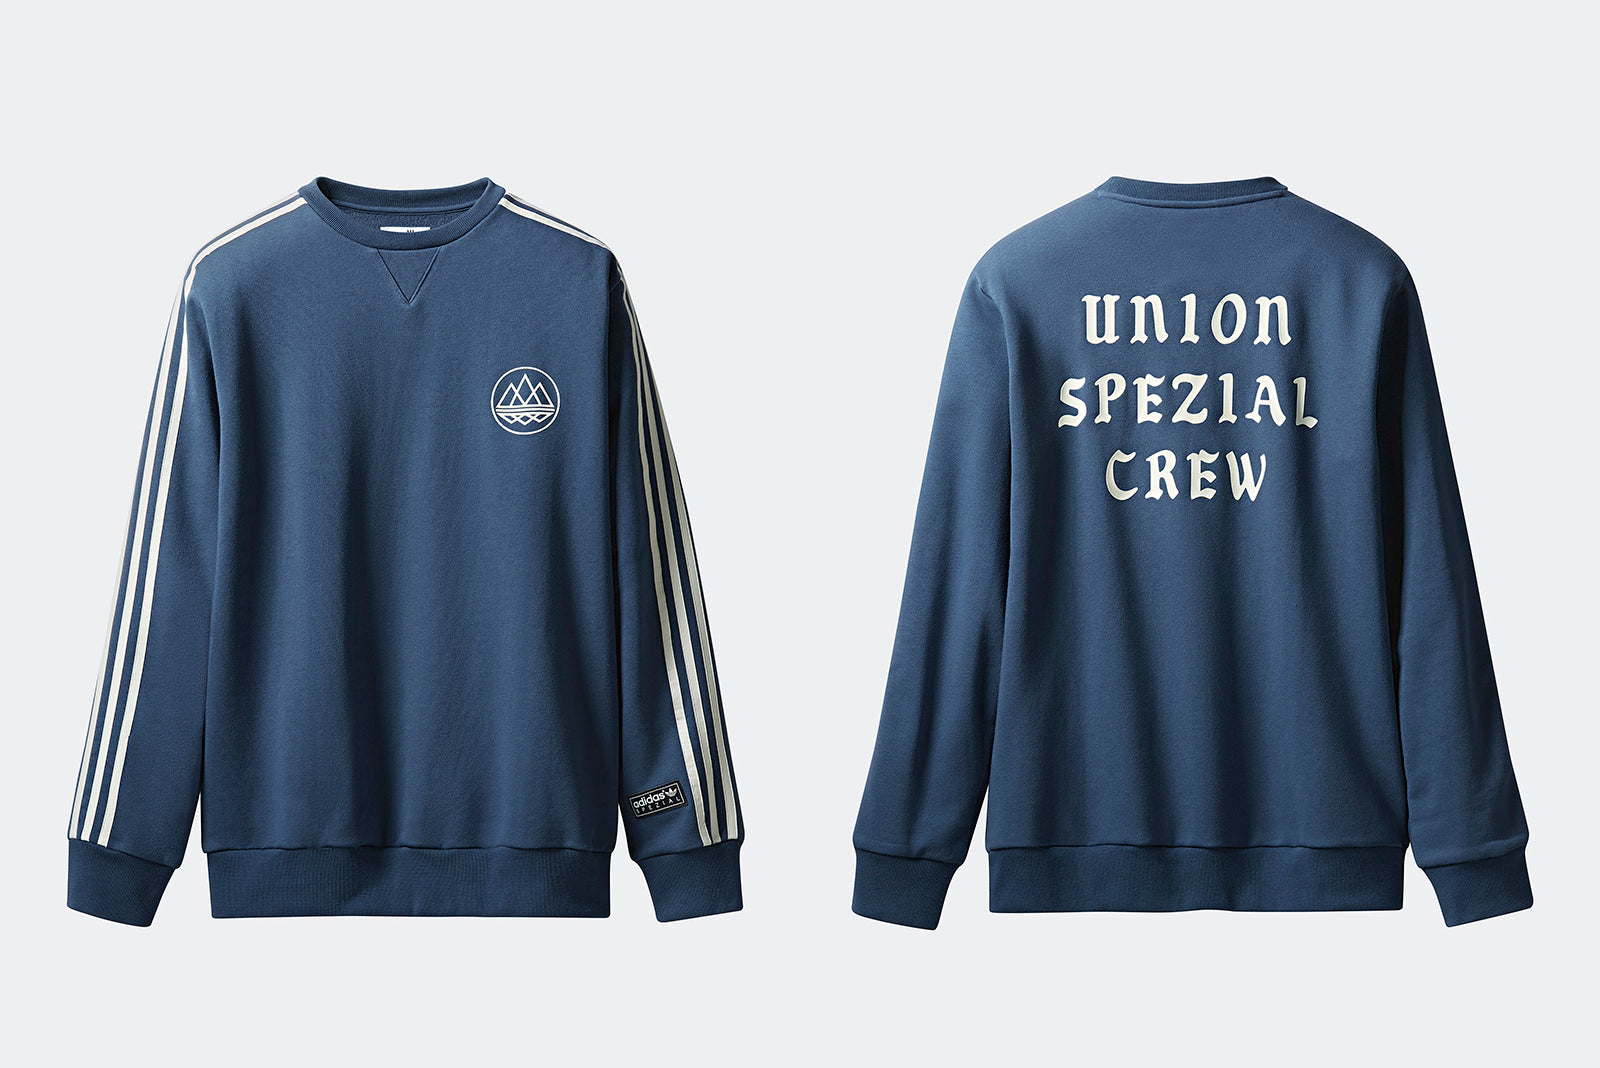 653cfa6eb0e8e adidas Crew SPZL x UNION LA DQ0112 Dark Blue Price  £109.00. Launch   Thursday 25th of October ONLINE  23 00BST adidas Bucket Hat SPZL x UNION LA  DQ0115